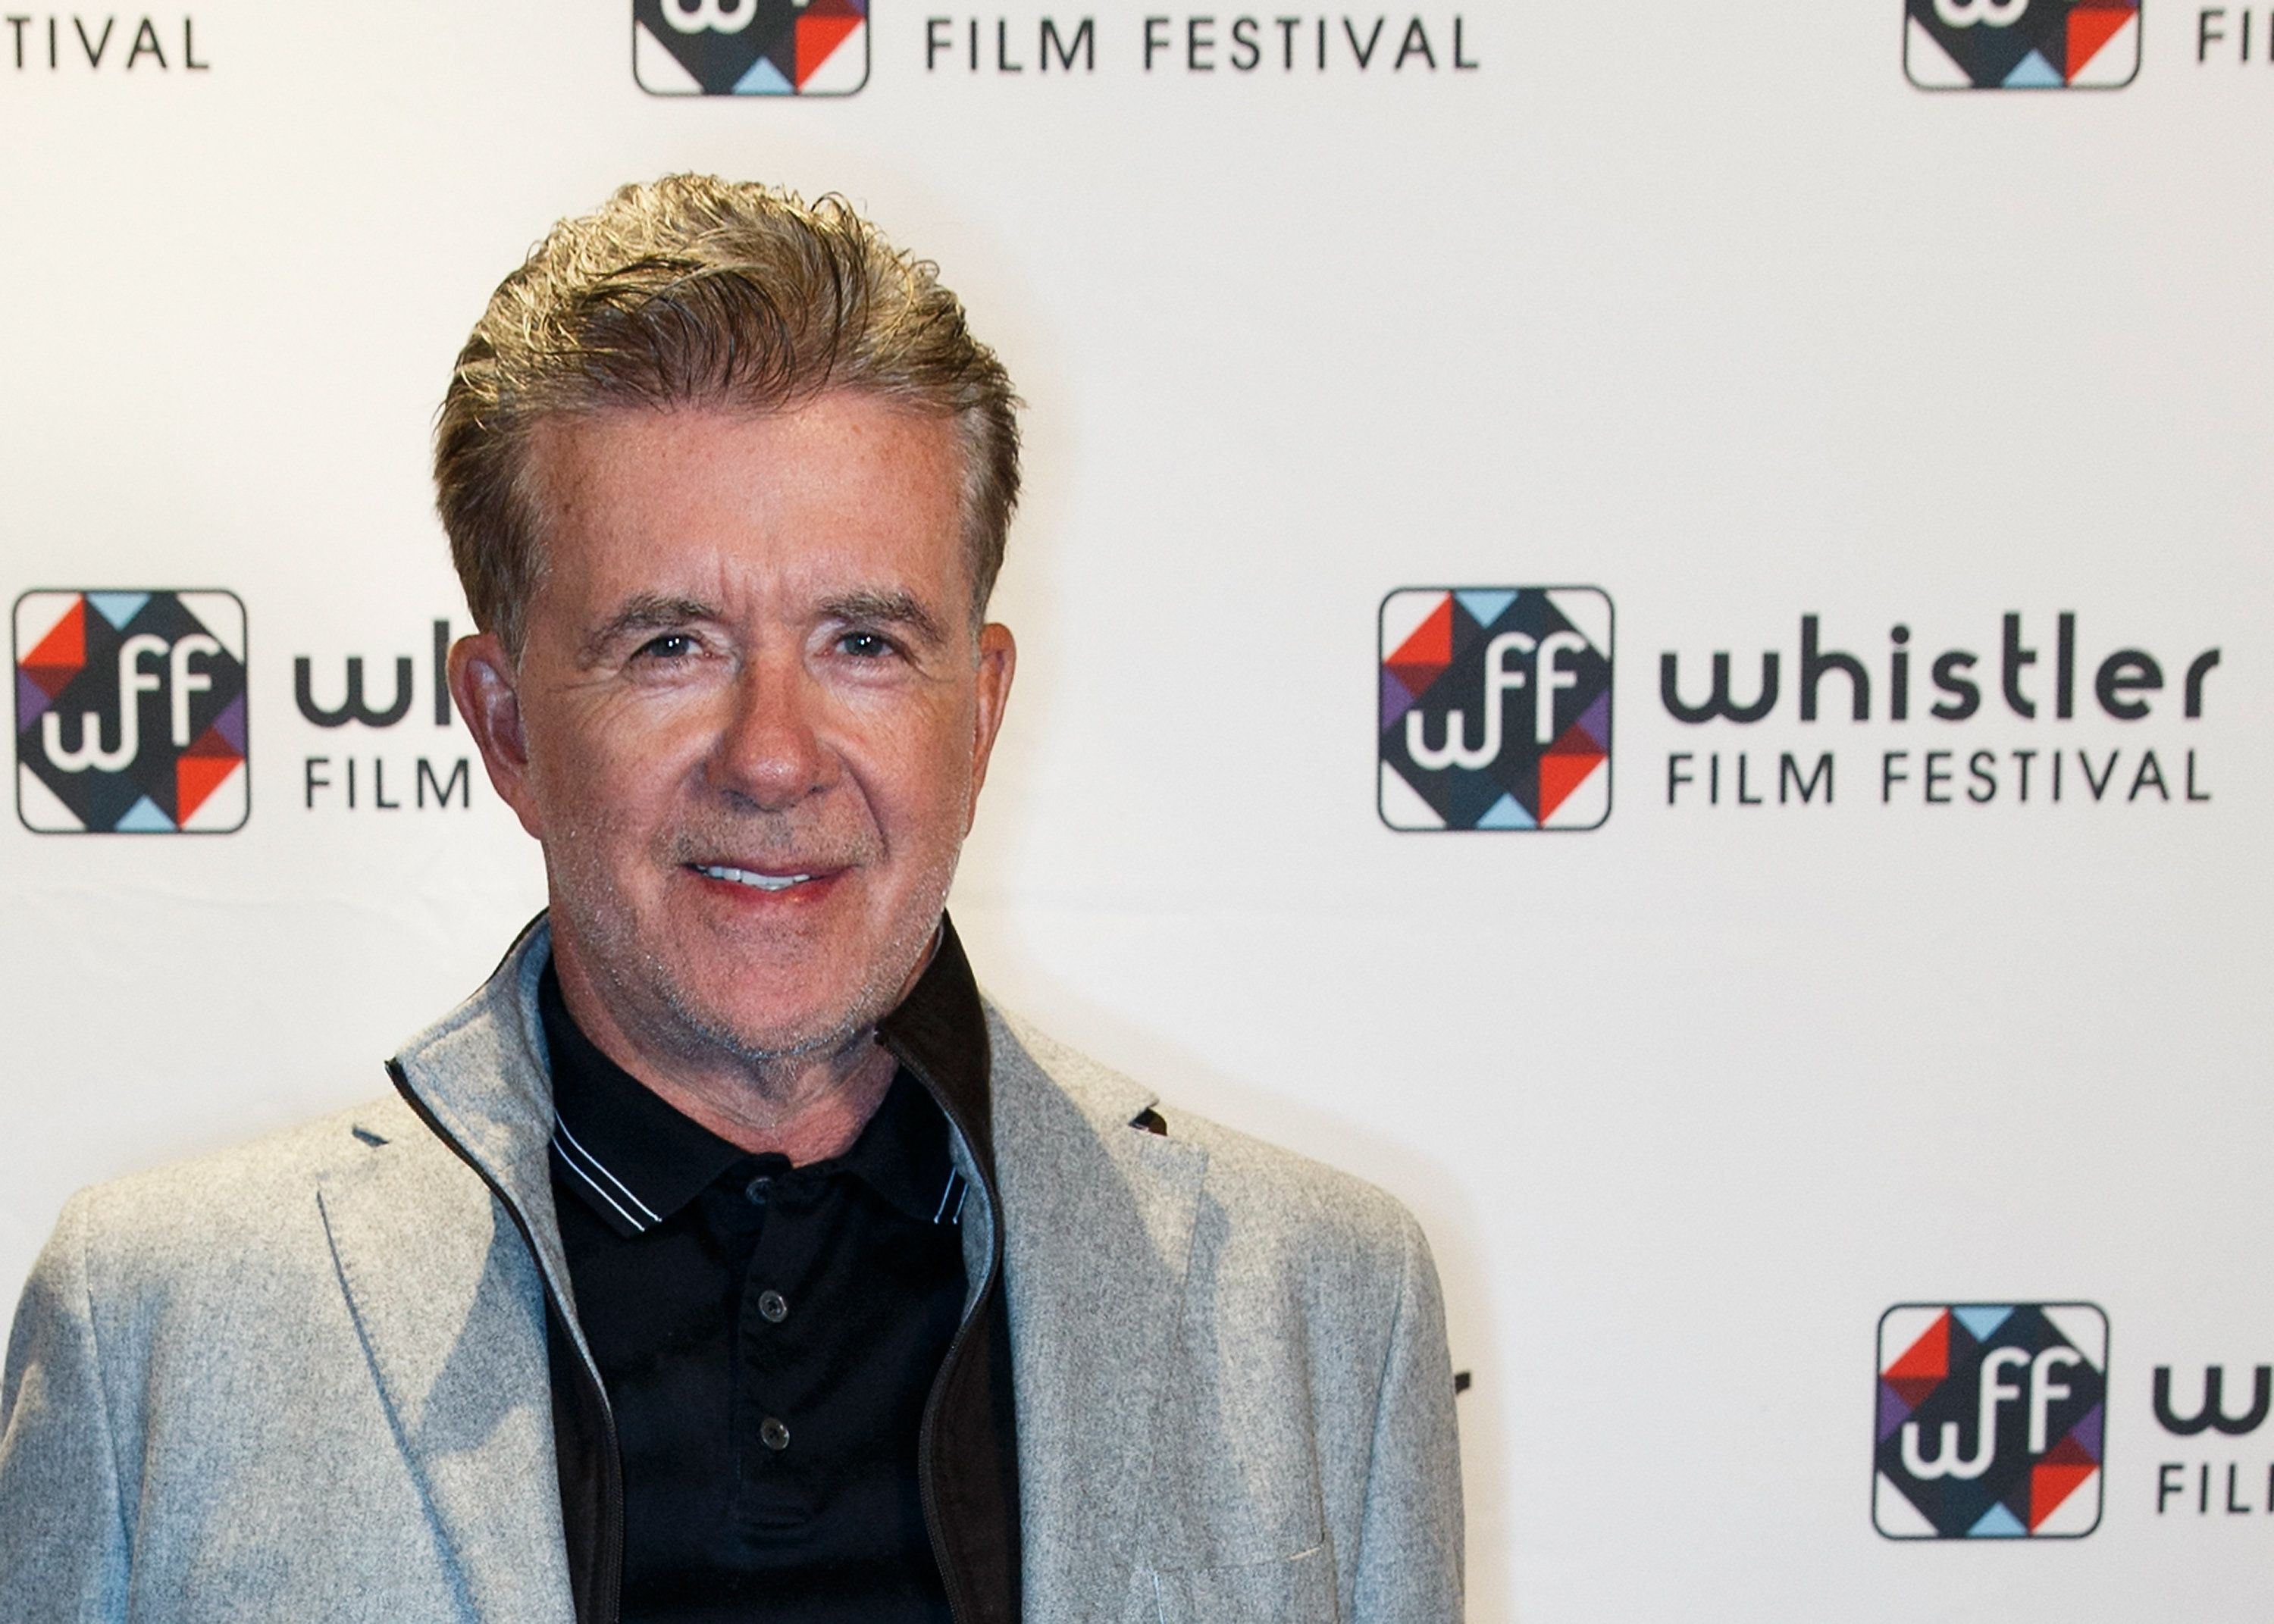 WHISTLER, BC - DECEMBER 02:  Canadian actor Alan Thicke attends Day 3 of the 16th Annual Whistler Film Festival at Whistler Village on December 2, 2016 in Whistler, Canada.  (Photo by Andrew Chin/Getty Images)